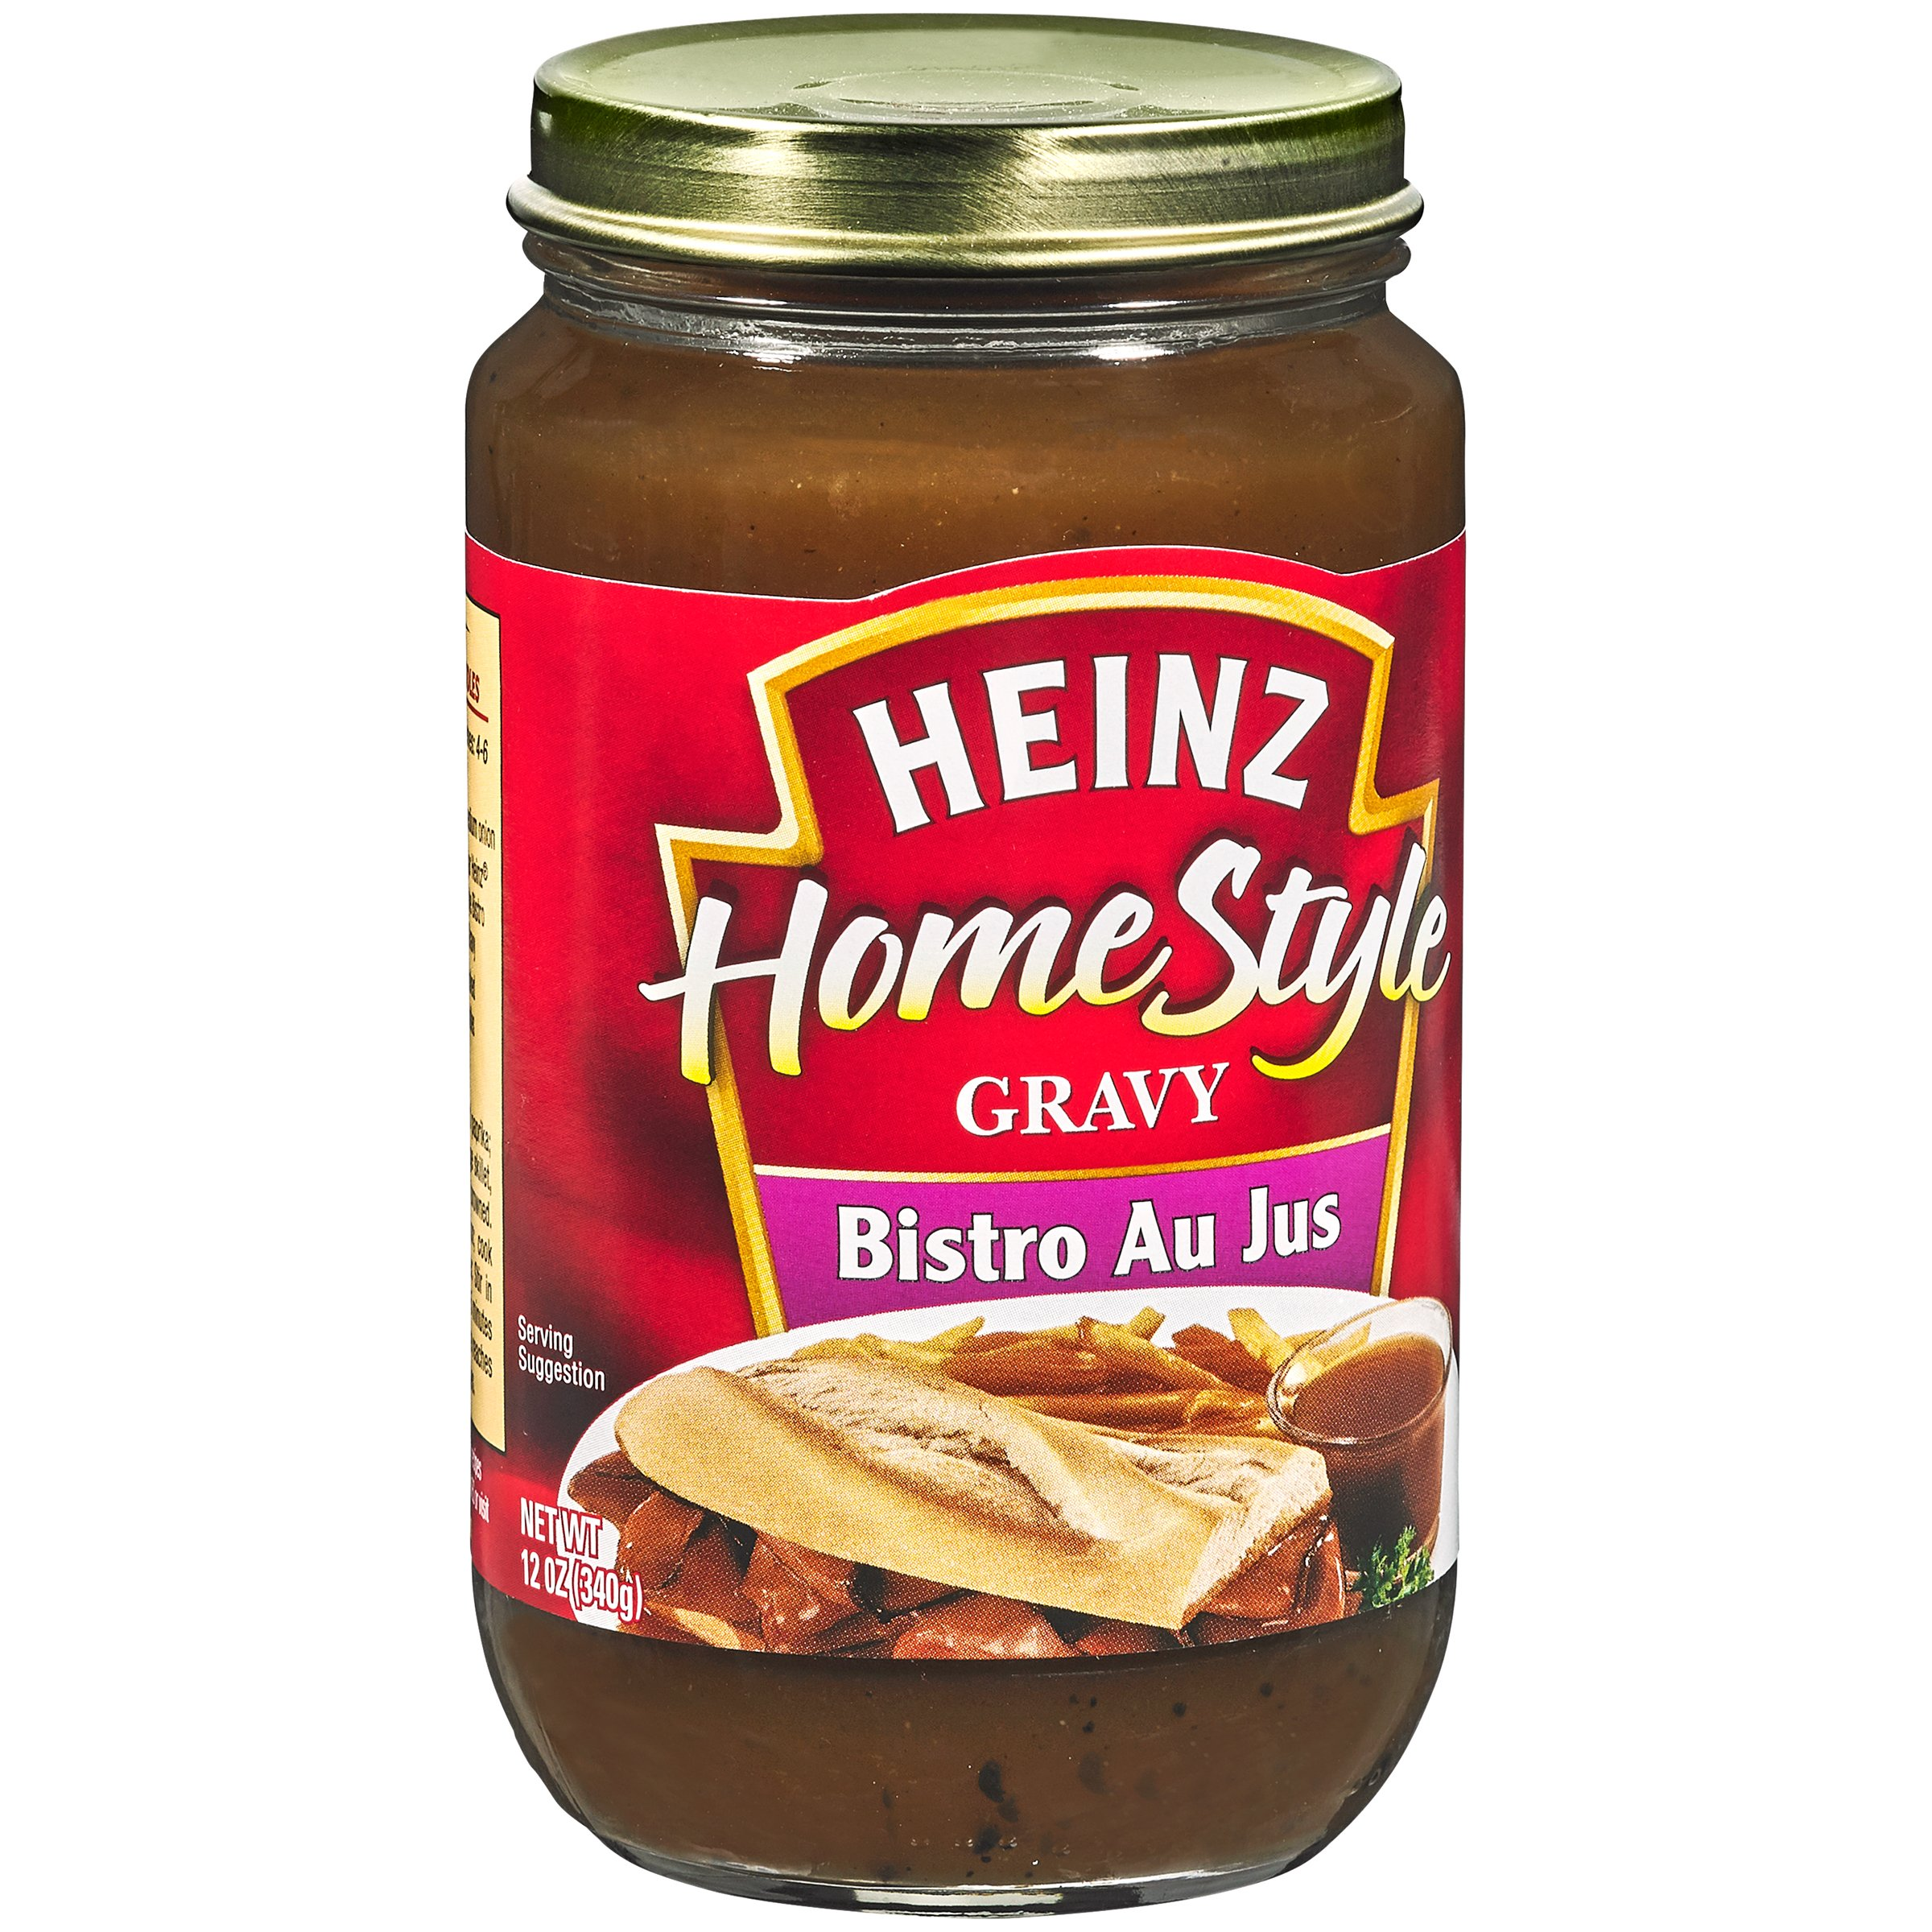 Heinz Homestyle Bistro Au Jus Gravy, 12 Ounce (Pack of 12)